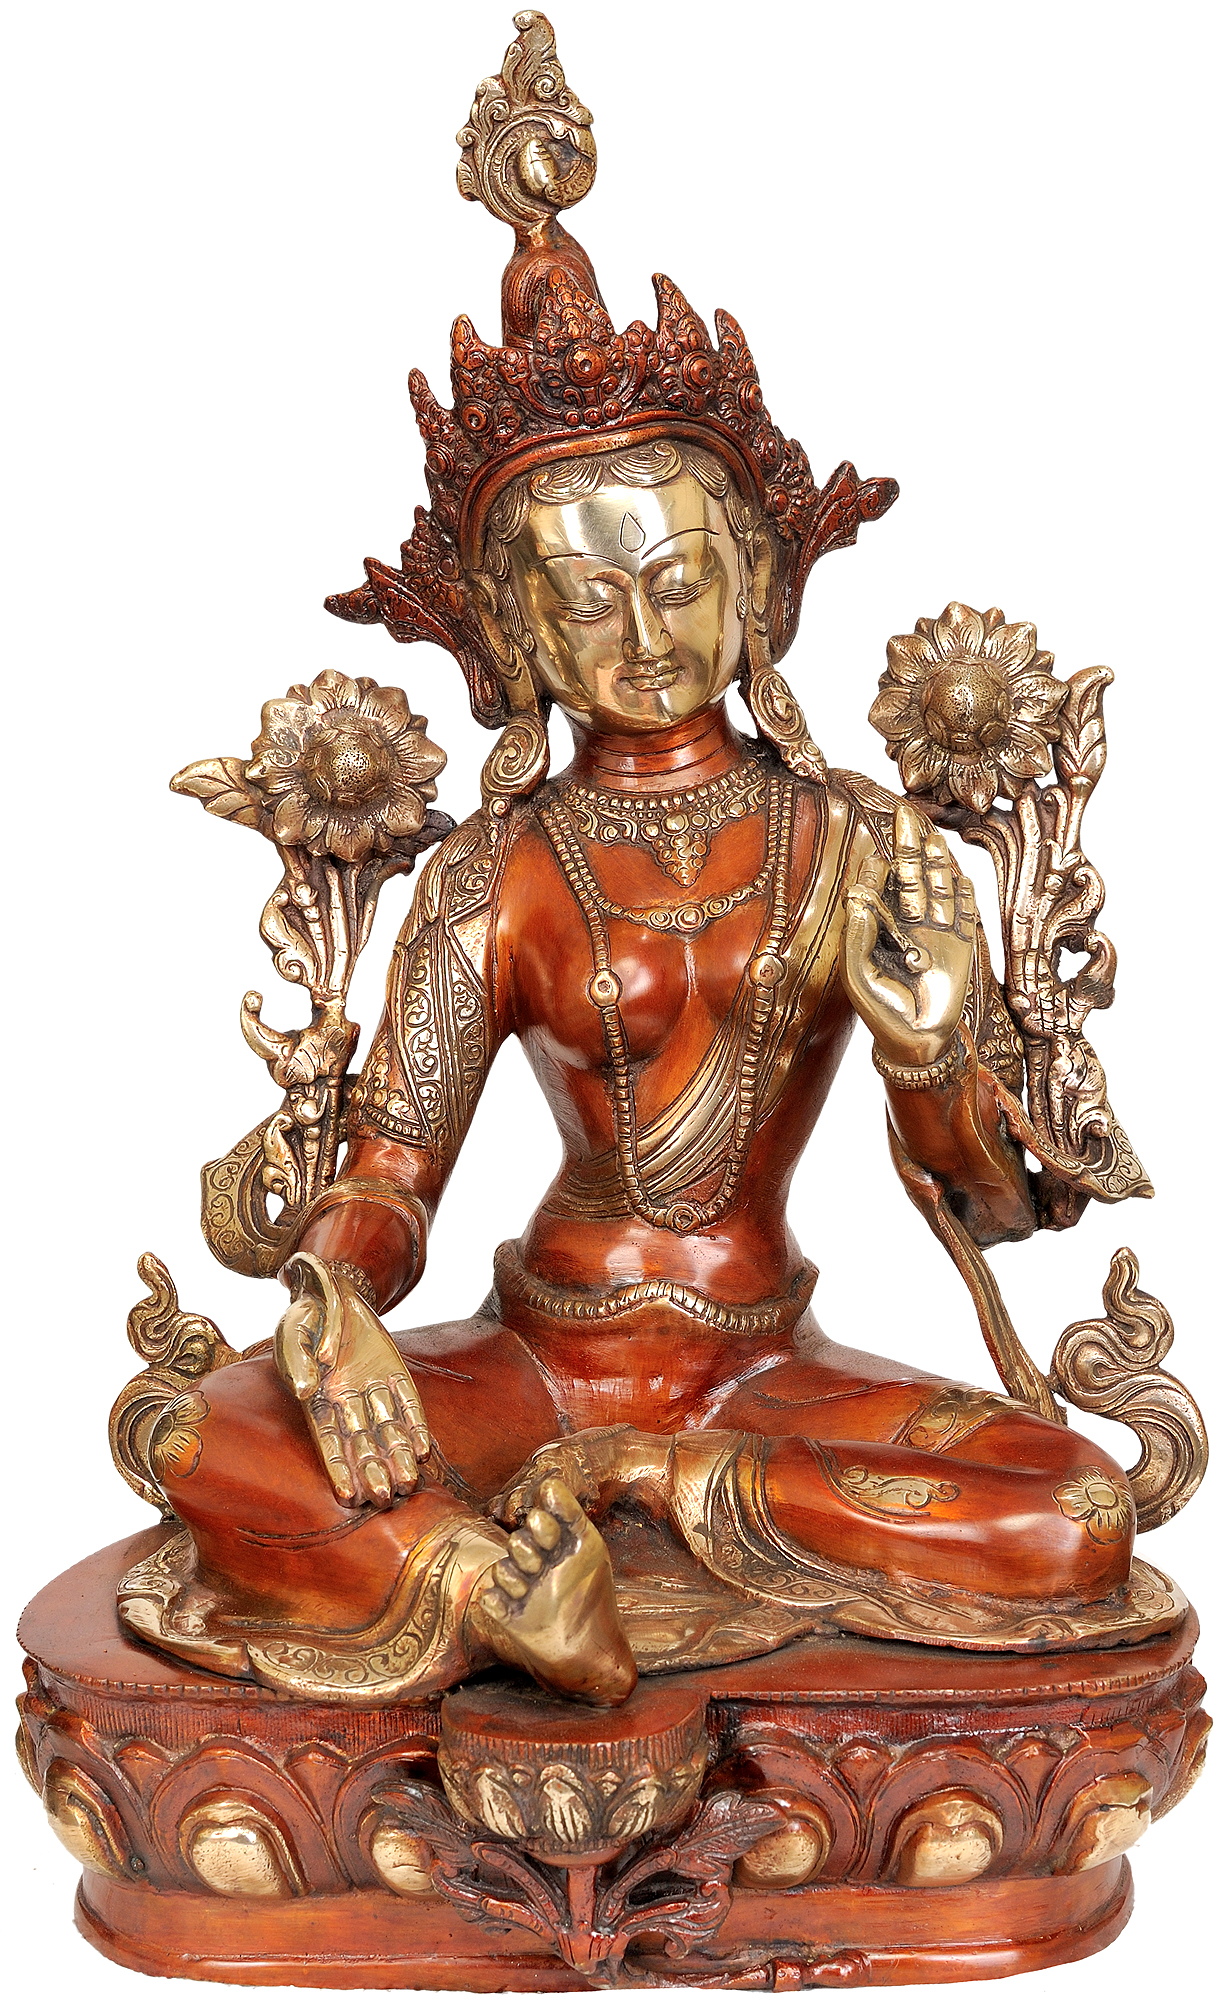 goddess tara buddhist savior Tara is one of the most beloved of deities, particularly by tibetans legend has it that once, many eons ago during the time of buddha dundubhisvara, there lived a princess by the name of 'moon of wisdom-knowledge.